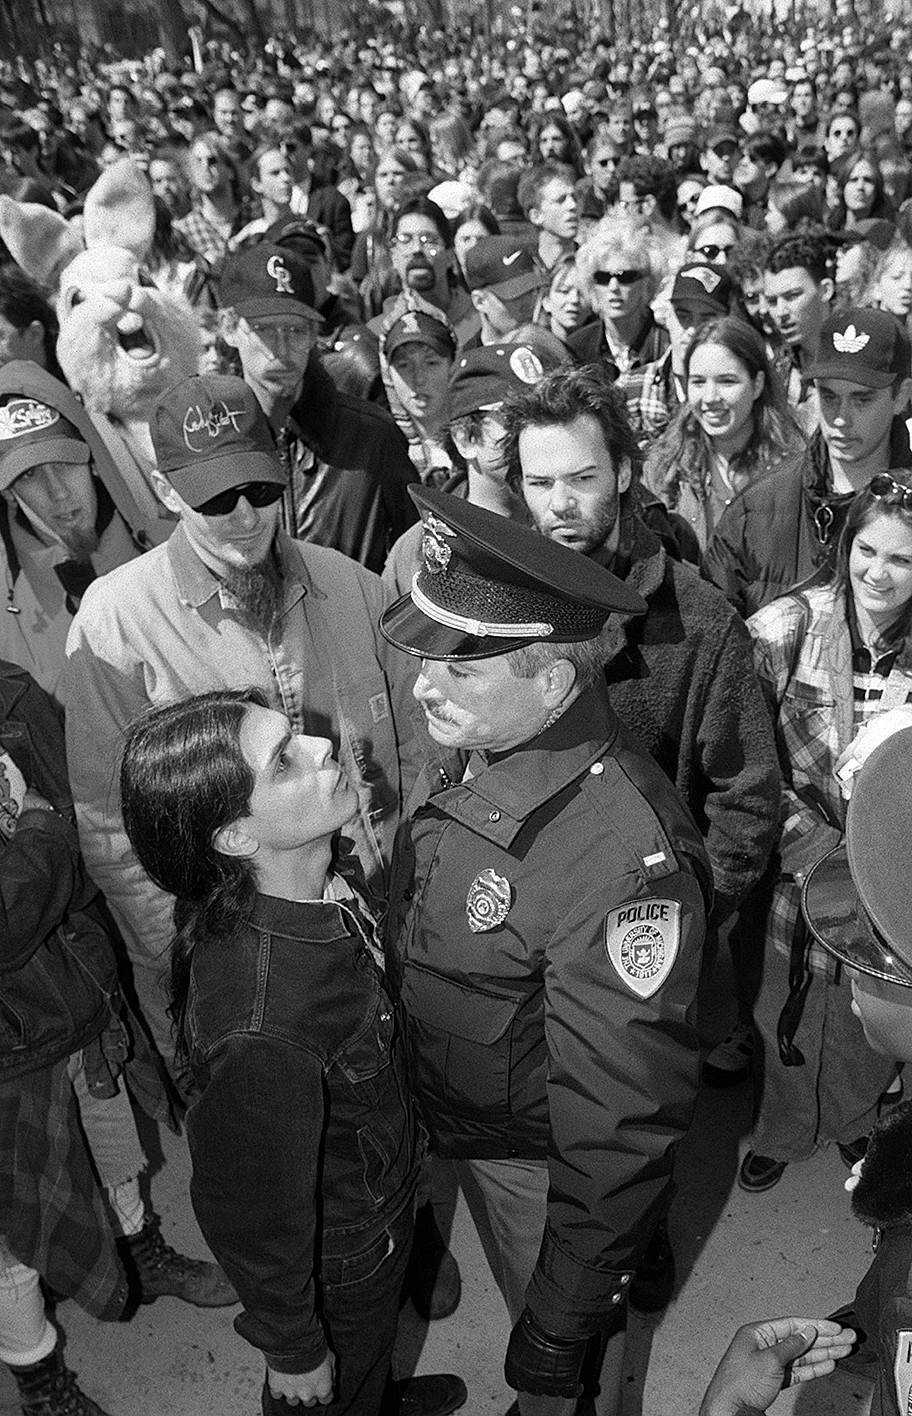 Hash Bash Rally Member Argues With Police Over Use Of Sound Equipment, April 7, 1996 image